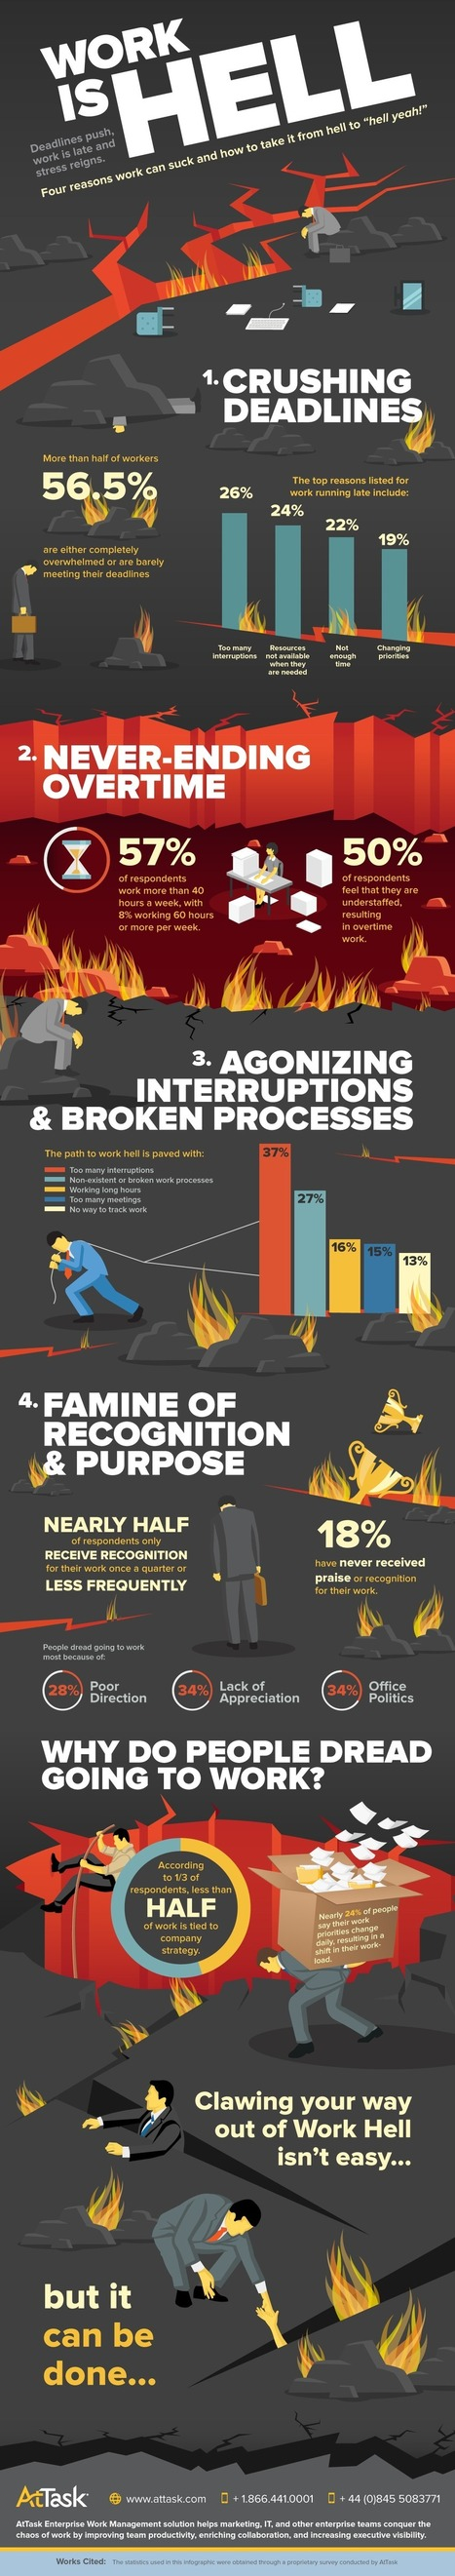 Changing The Culture Of Rampant Dissatisfaction In The Workplace | social media infographics and typography | Scoop.it